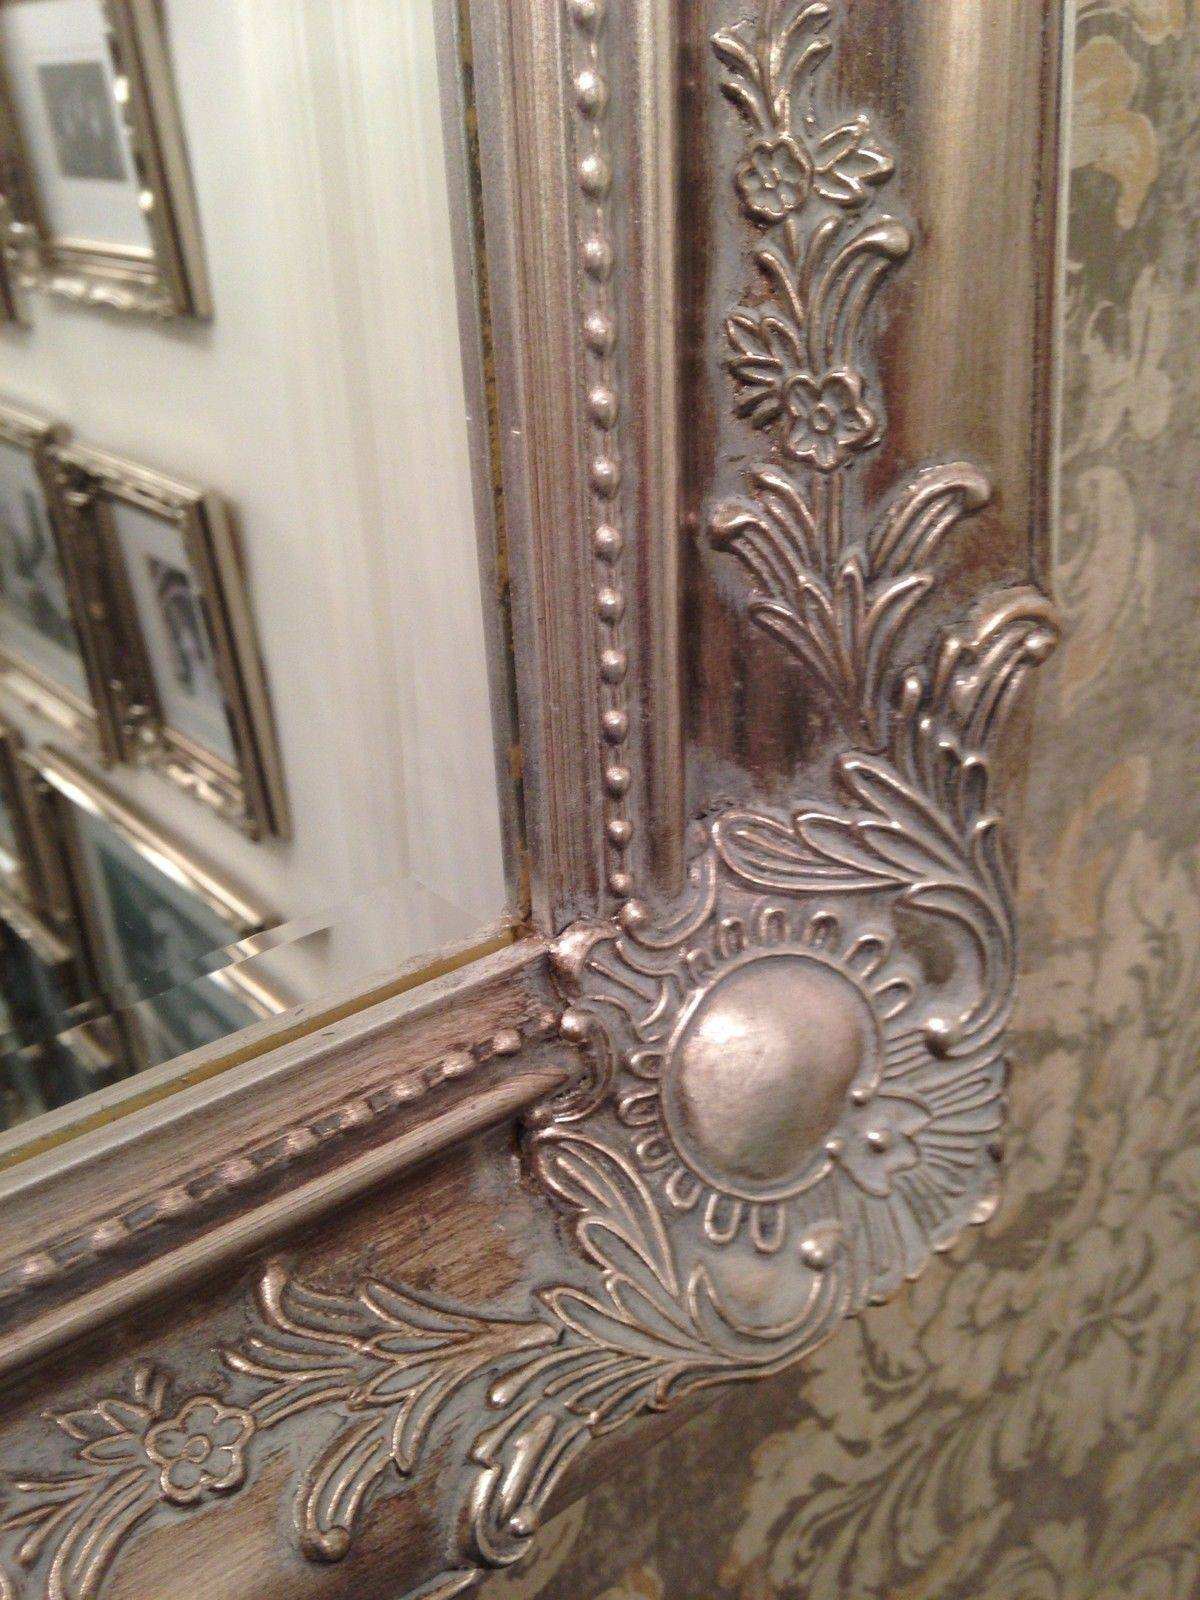 Shabby Chic Wall Mirror 88 Stunning Decor With Large Antique with Large Antique Wall Mirrors (Image 22 of 25)